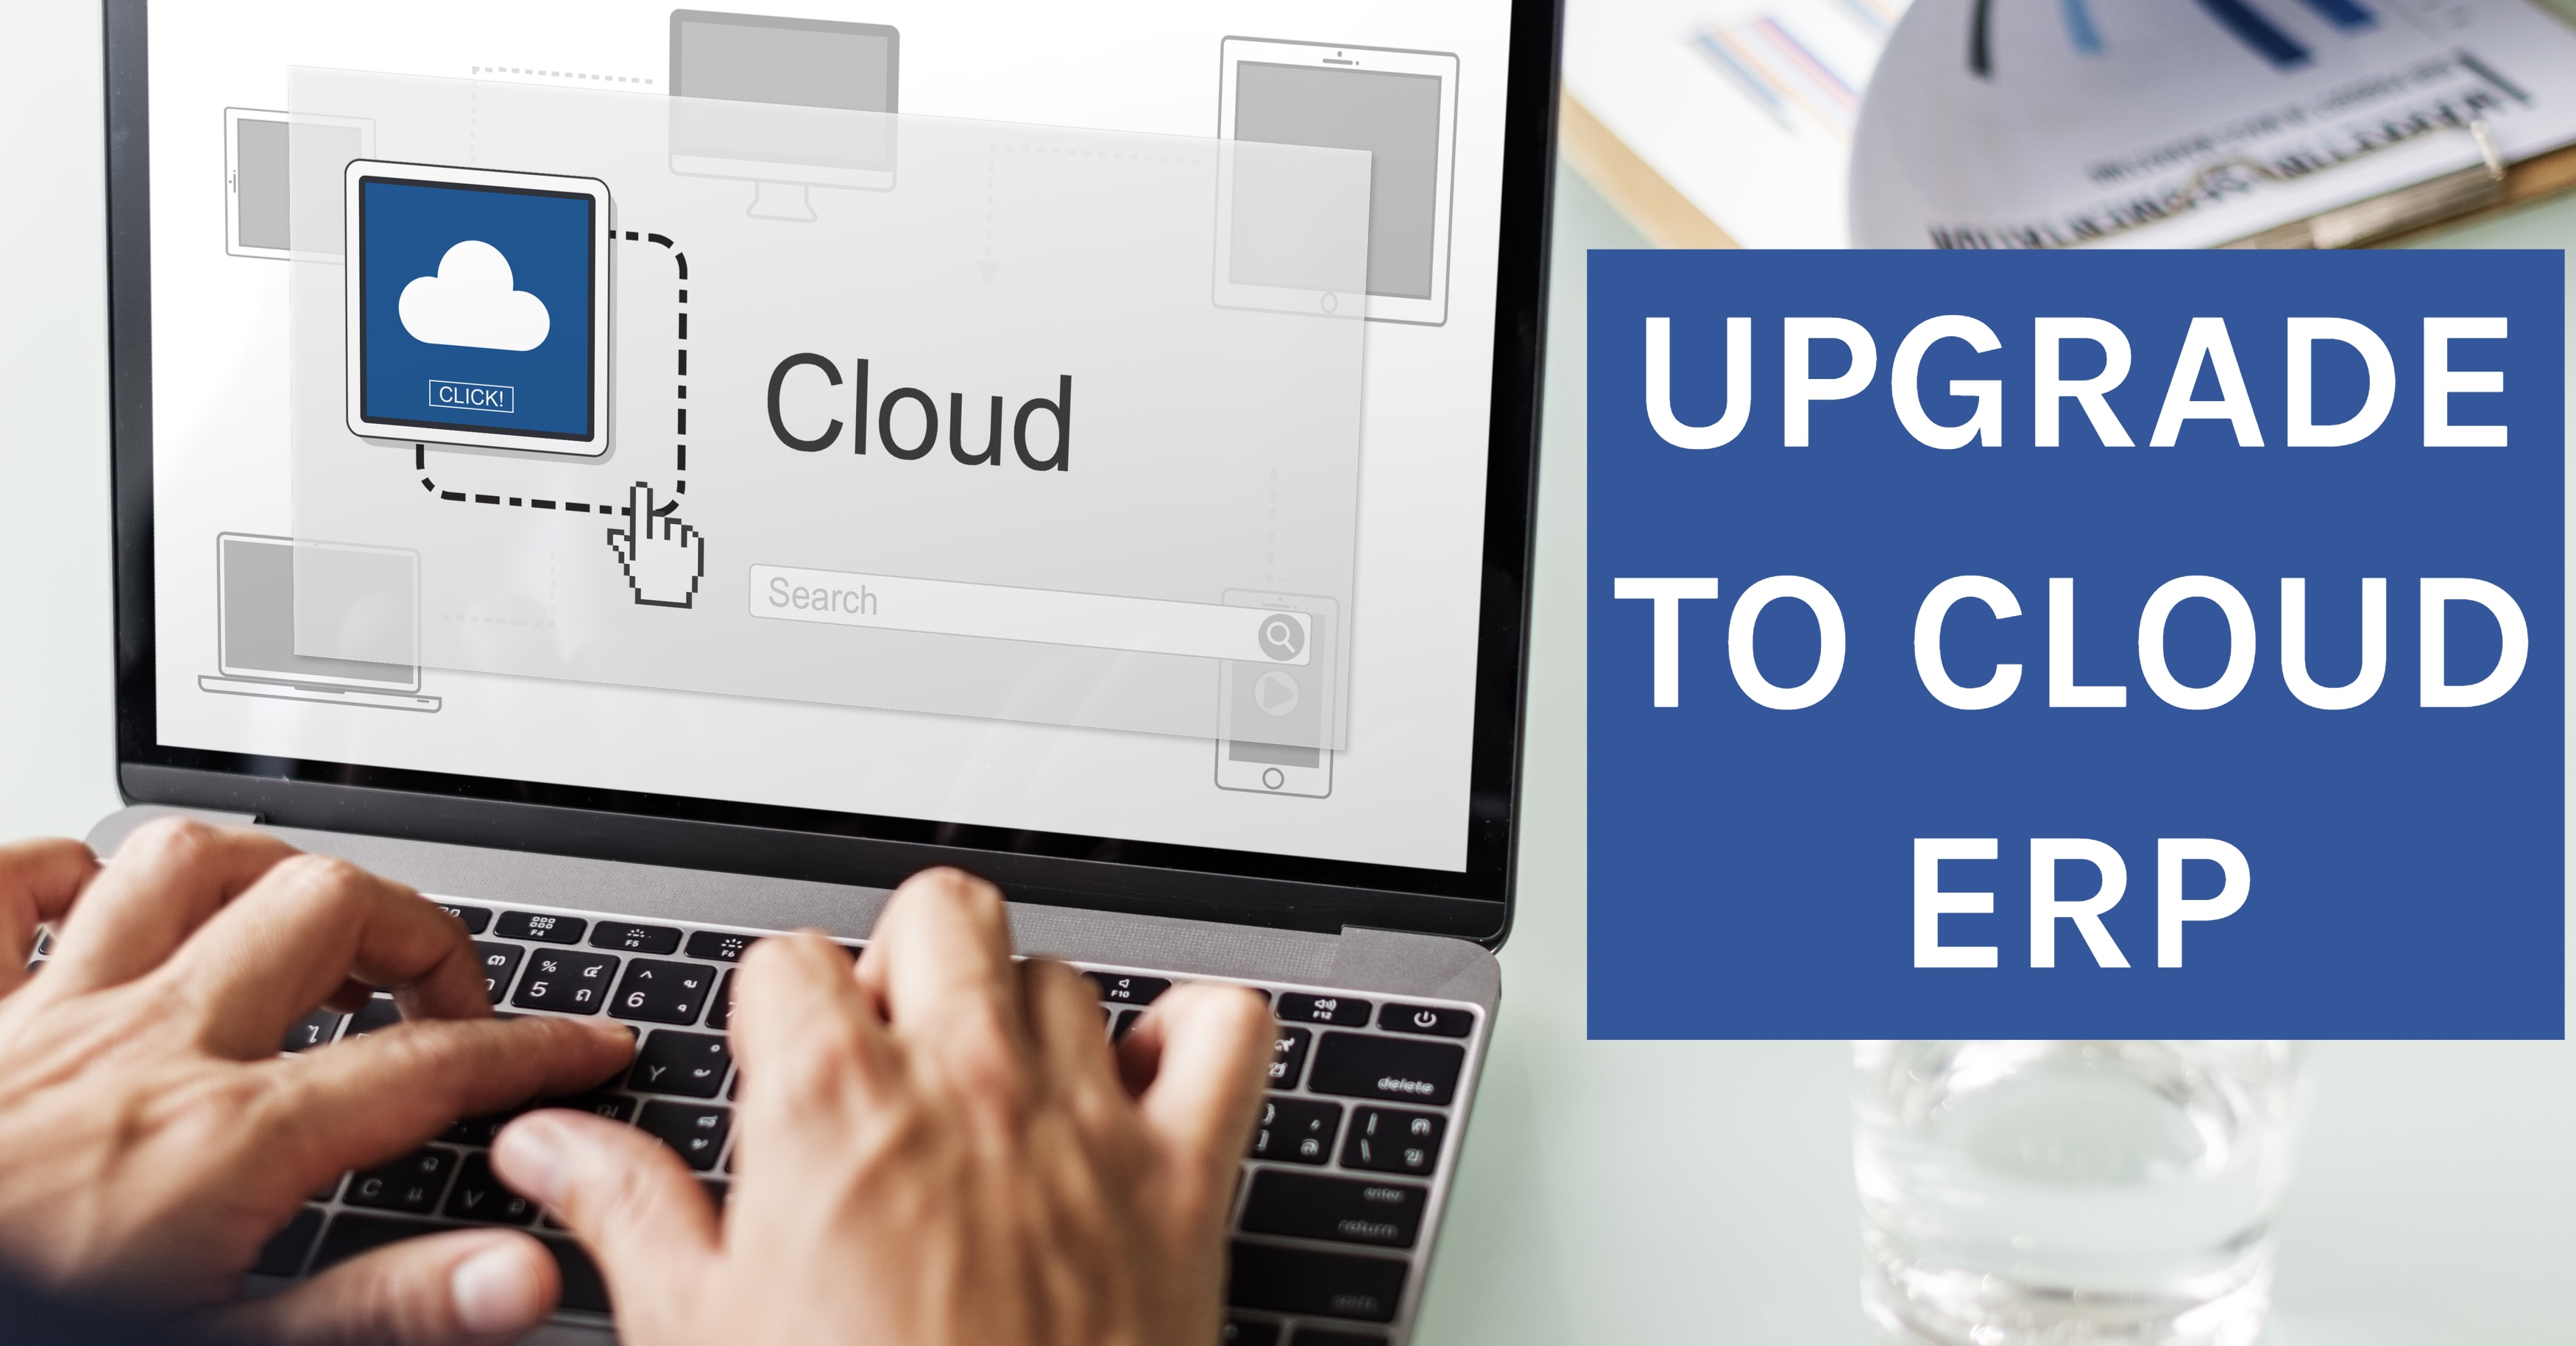 Ditch Enterprise, Vantage and Vista: Upgrade to Cloud ERP